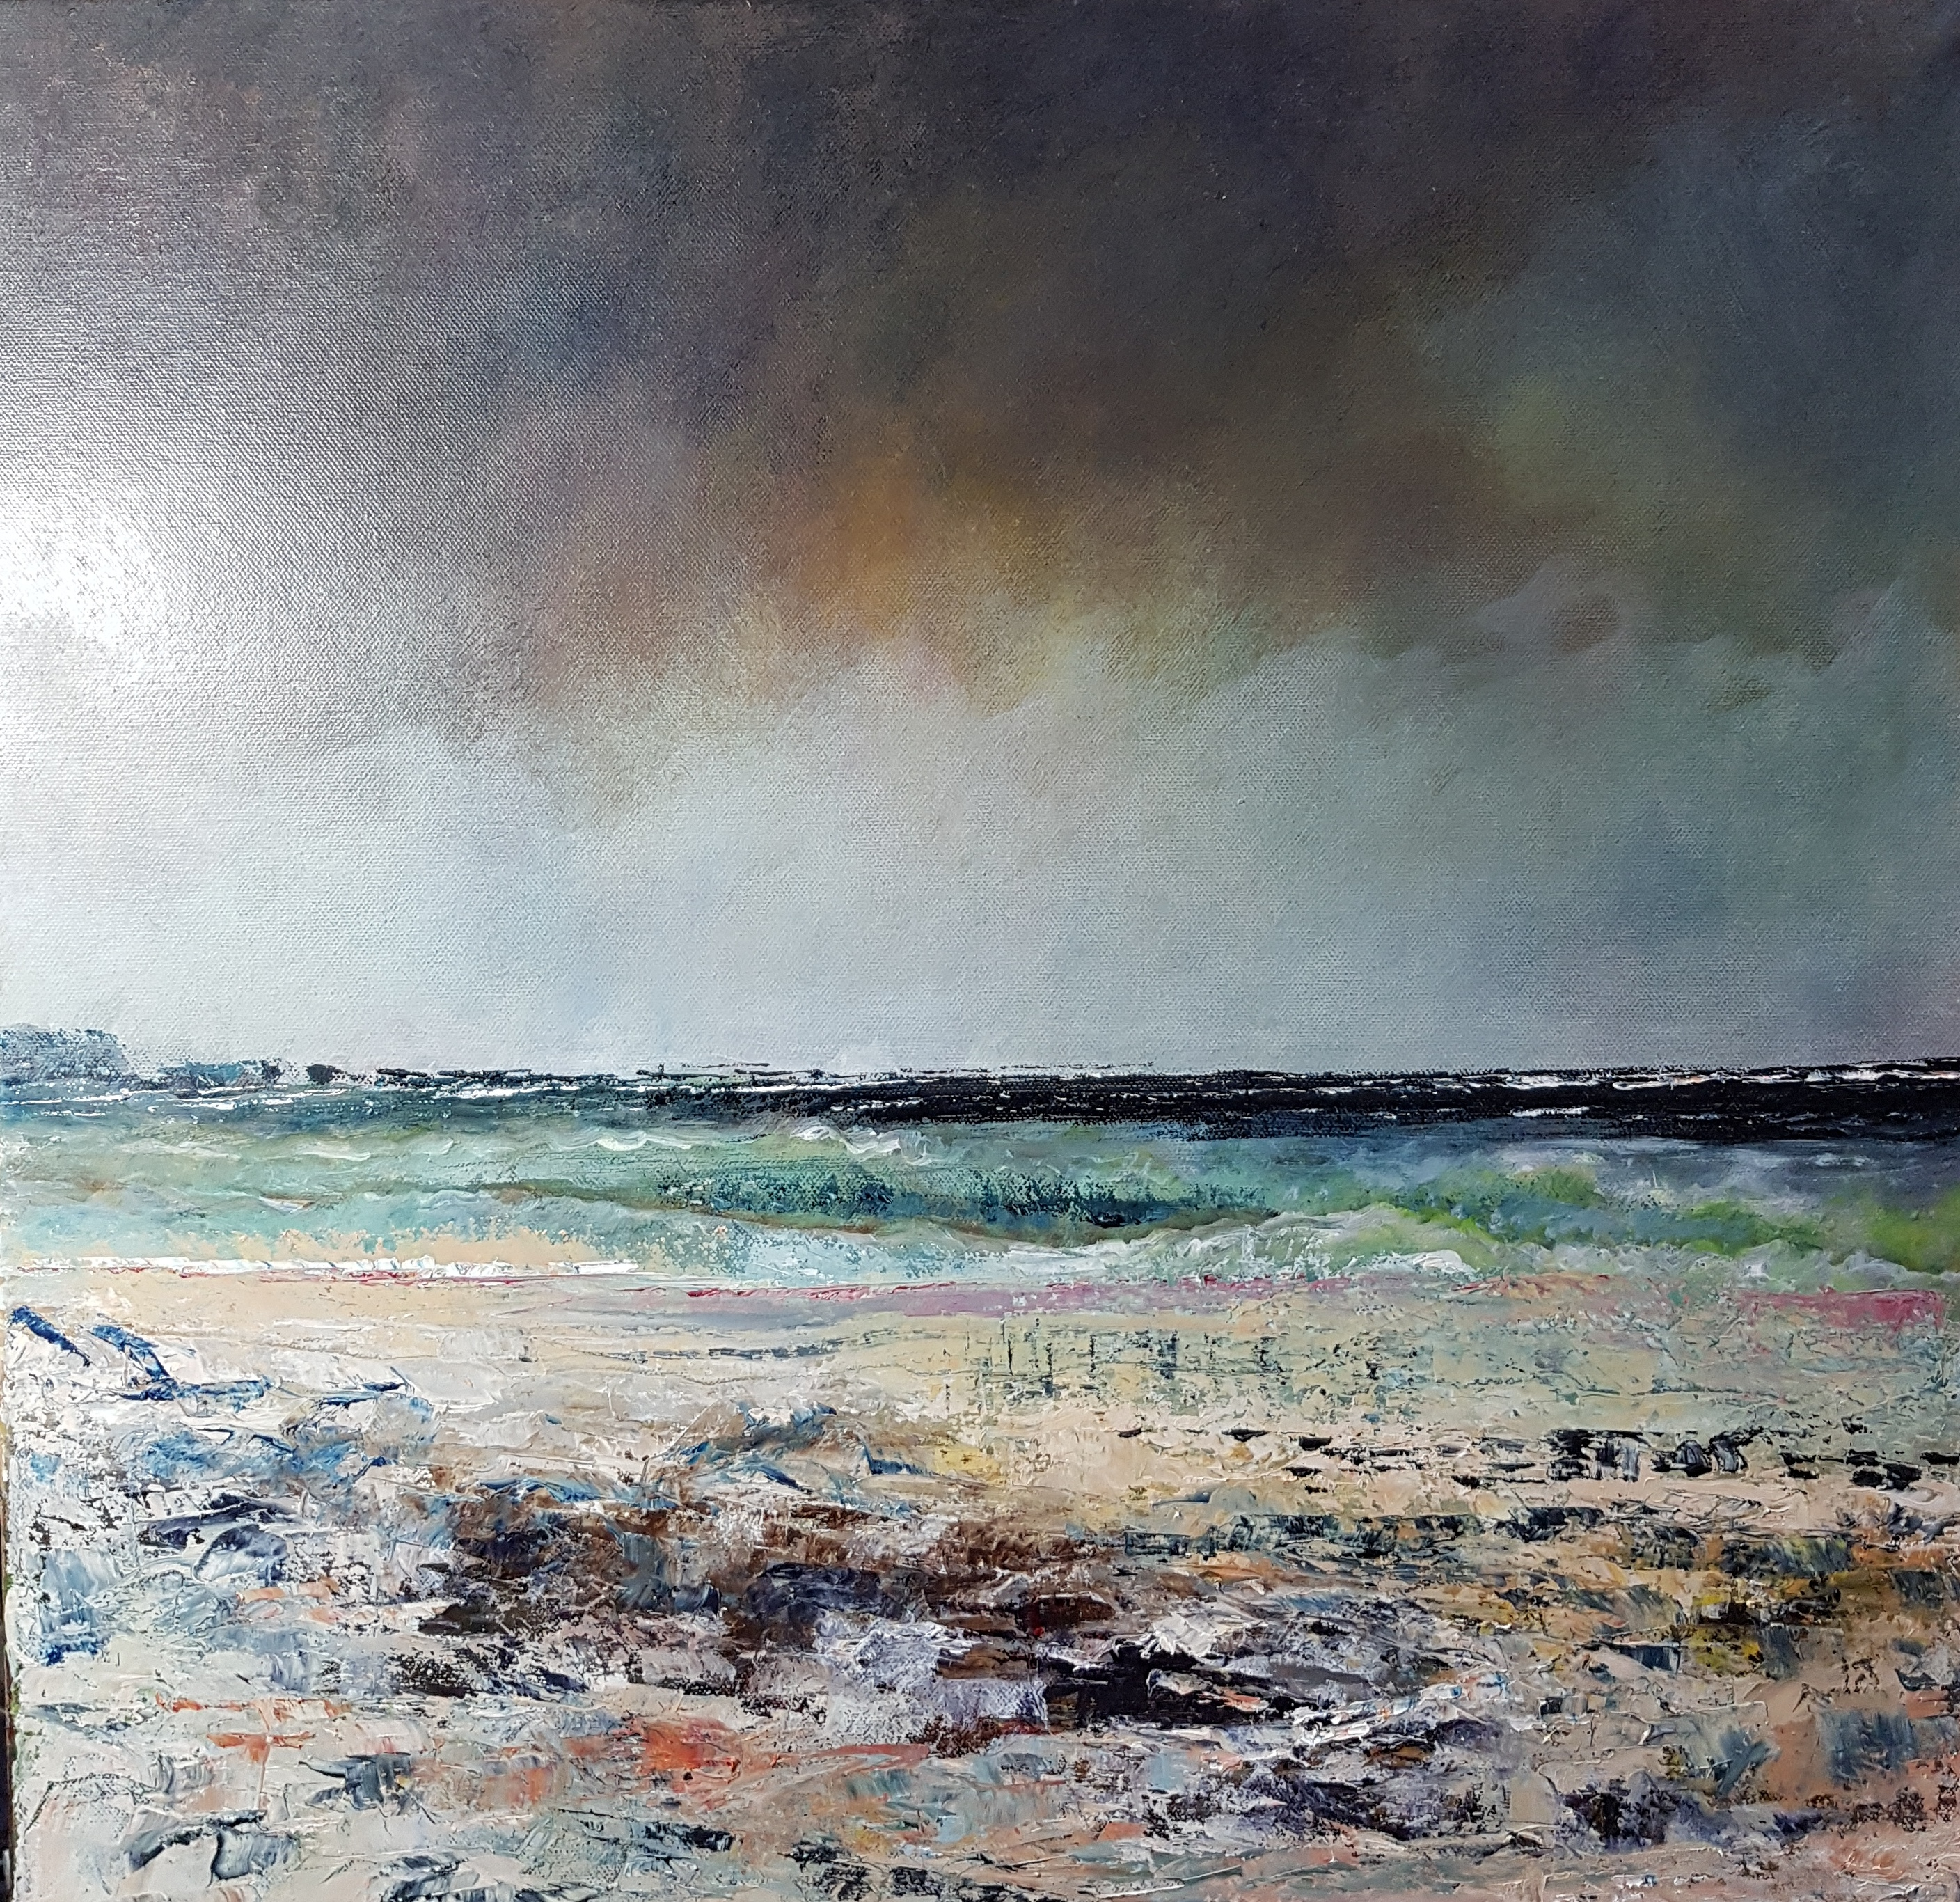 November Lull by John Tregembo at the Saffron Walden Gallery